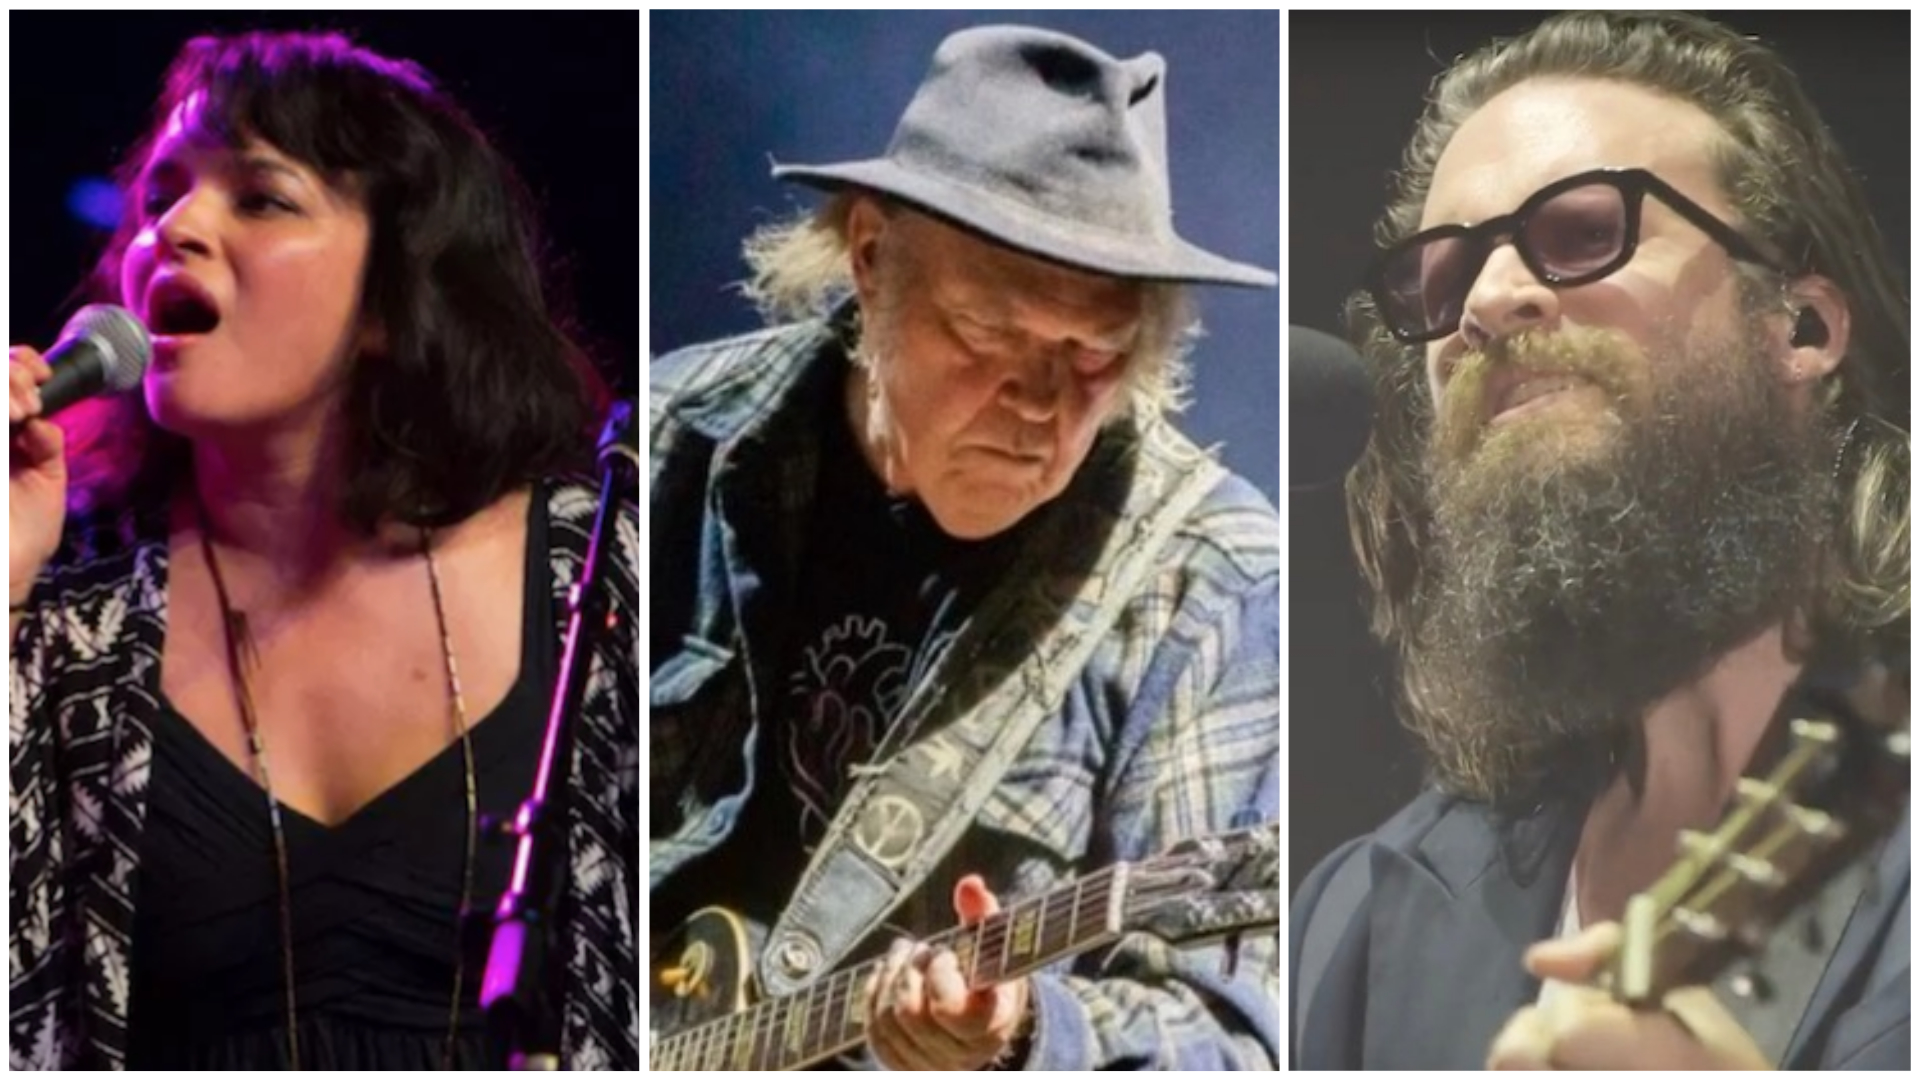 Neil Young, Norah Jones, and Father John Mist to play Harvest Moon benefit show